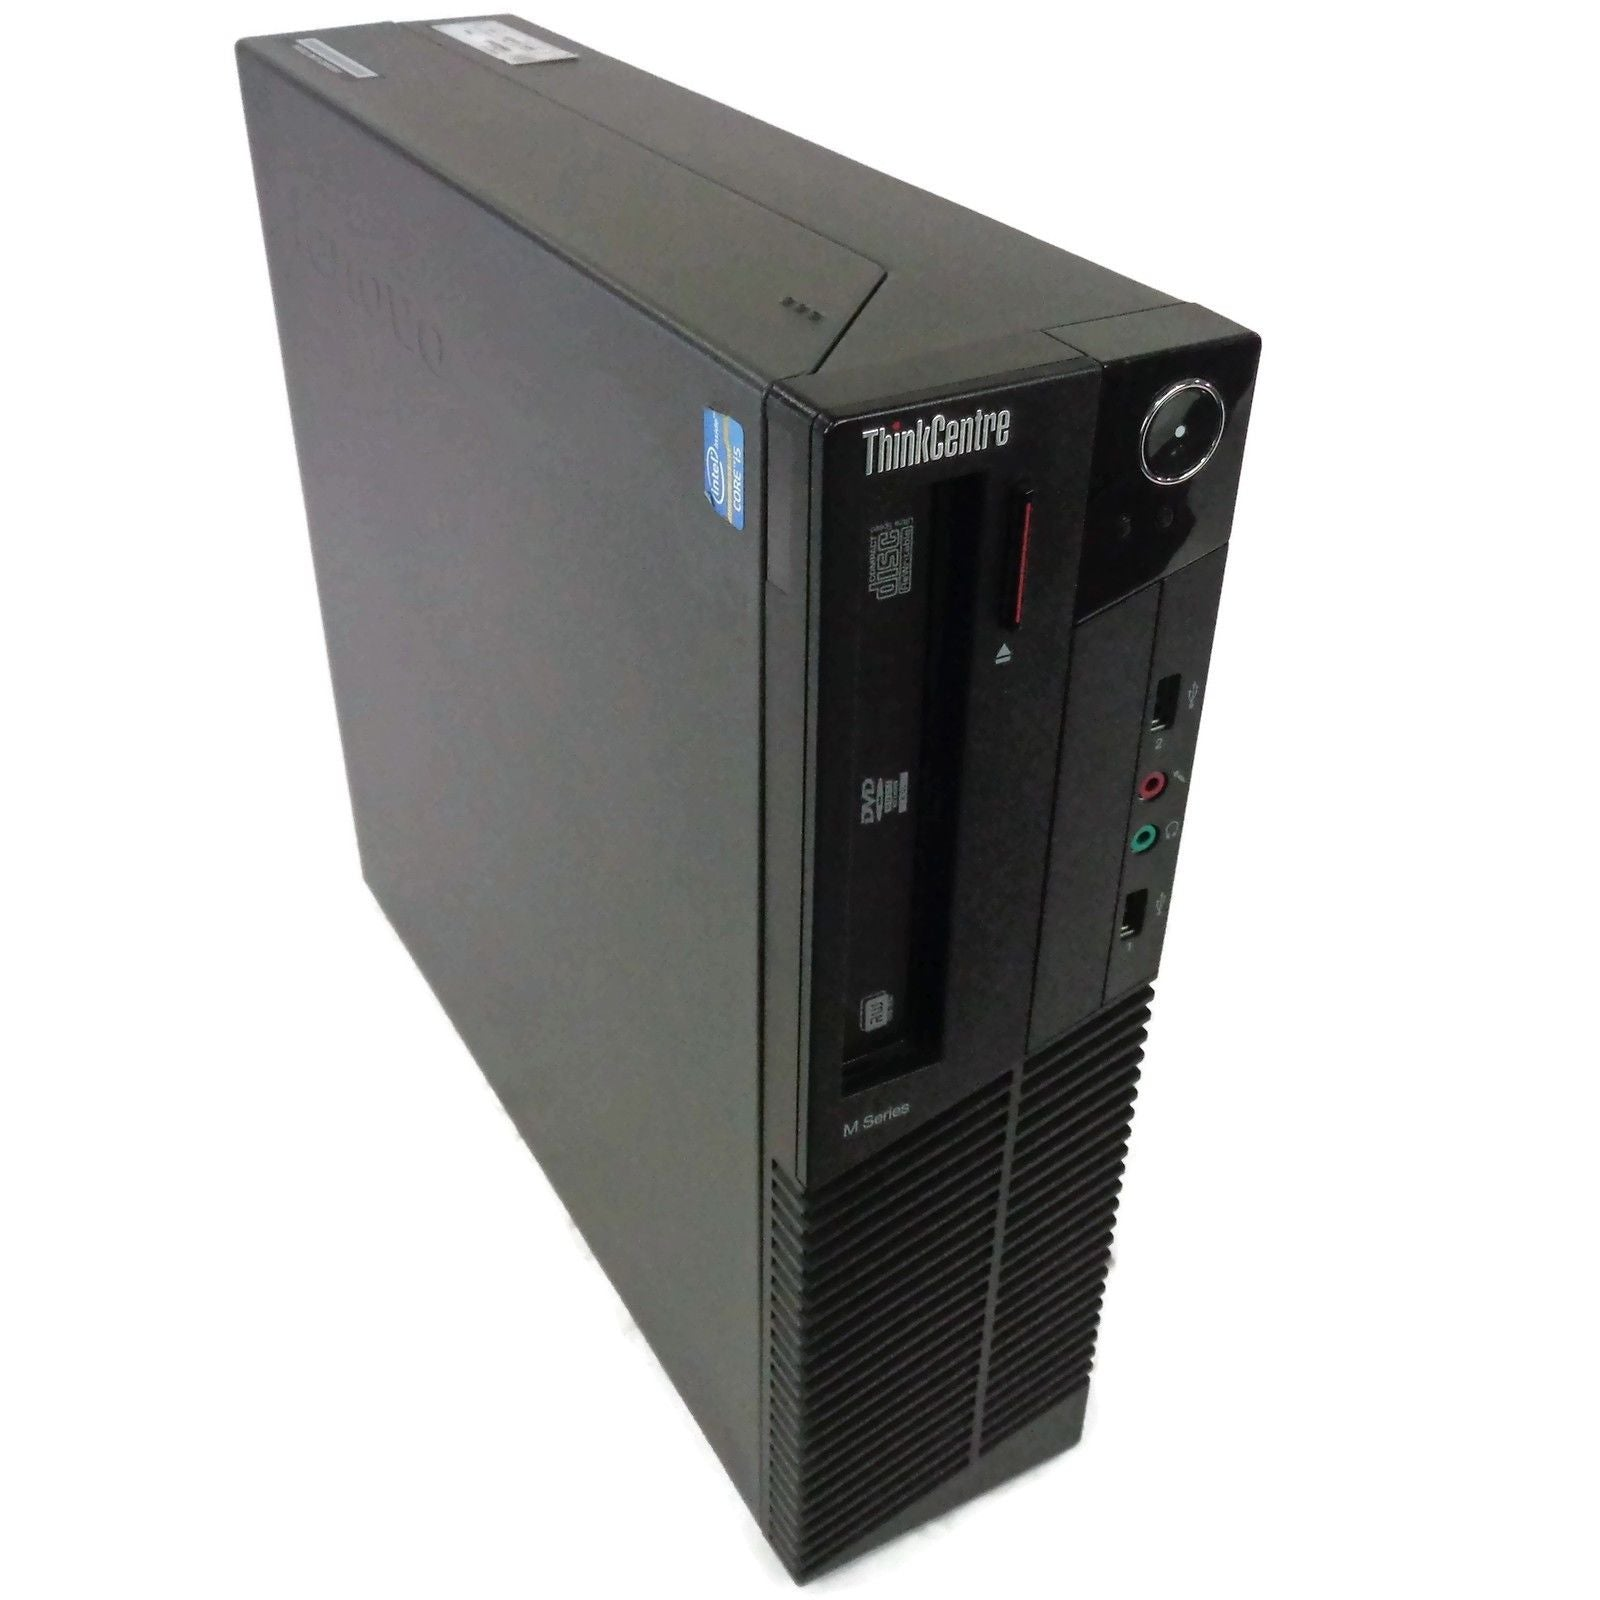 Lenovo M92p SFF Desktop Bundle Quad Core i5 3.2Ghz 8GB 500GB with 22